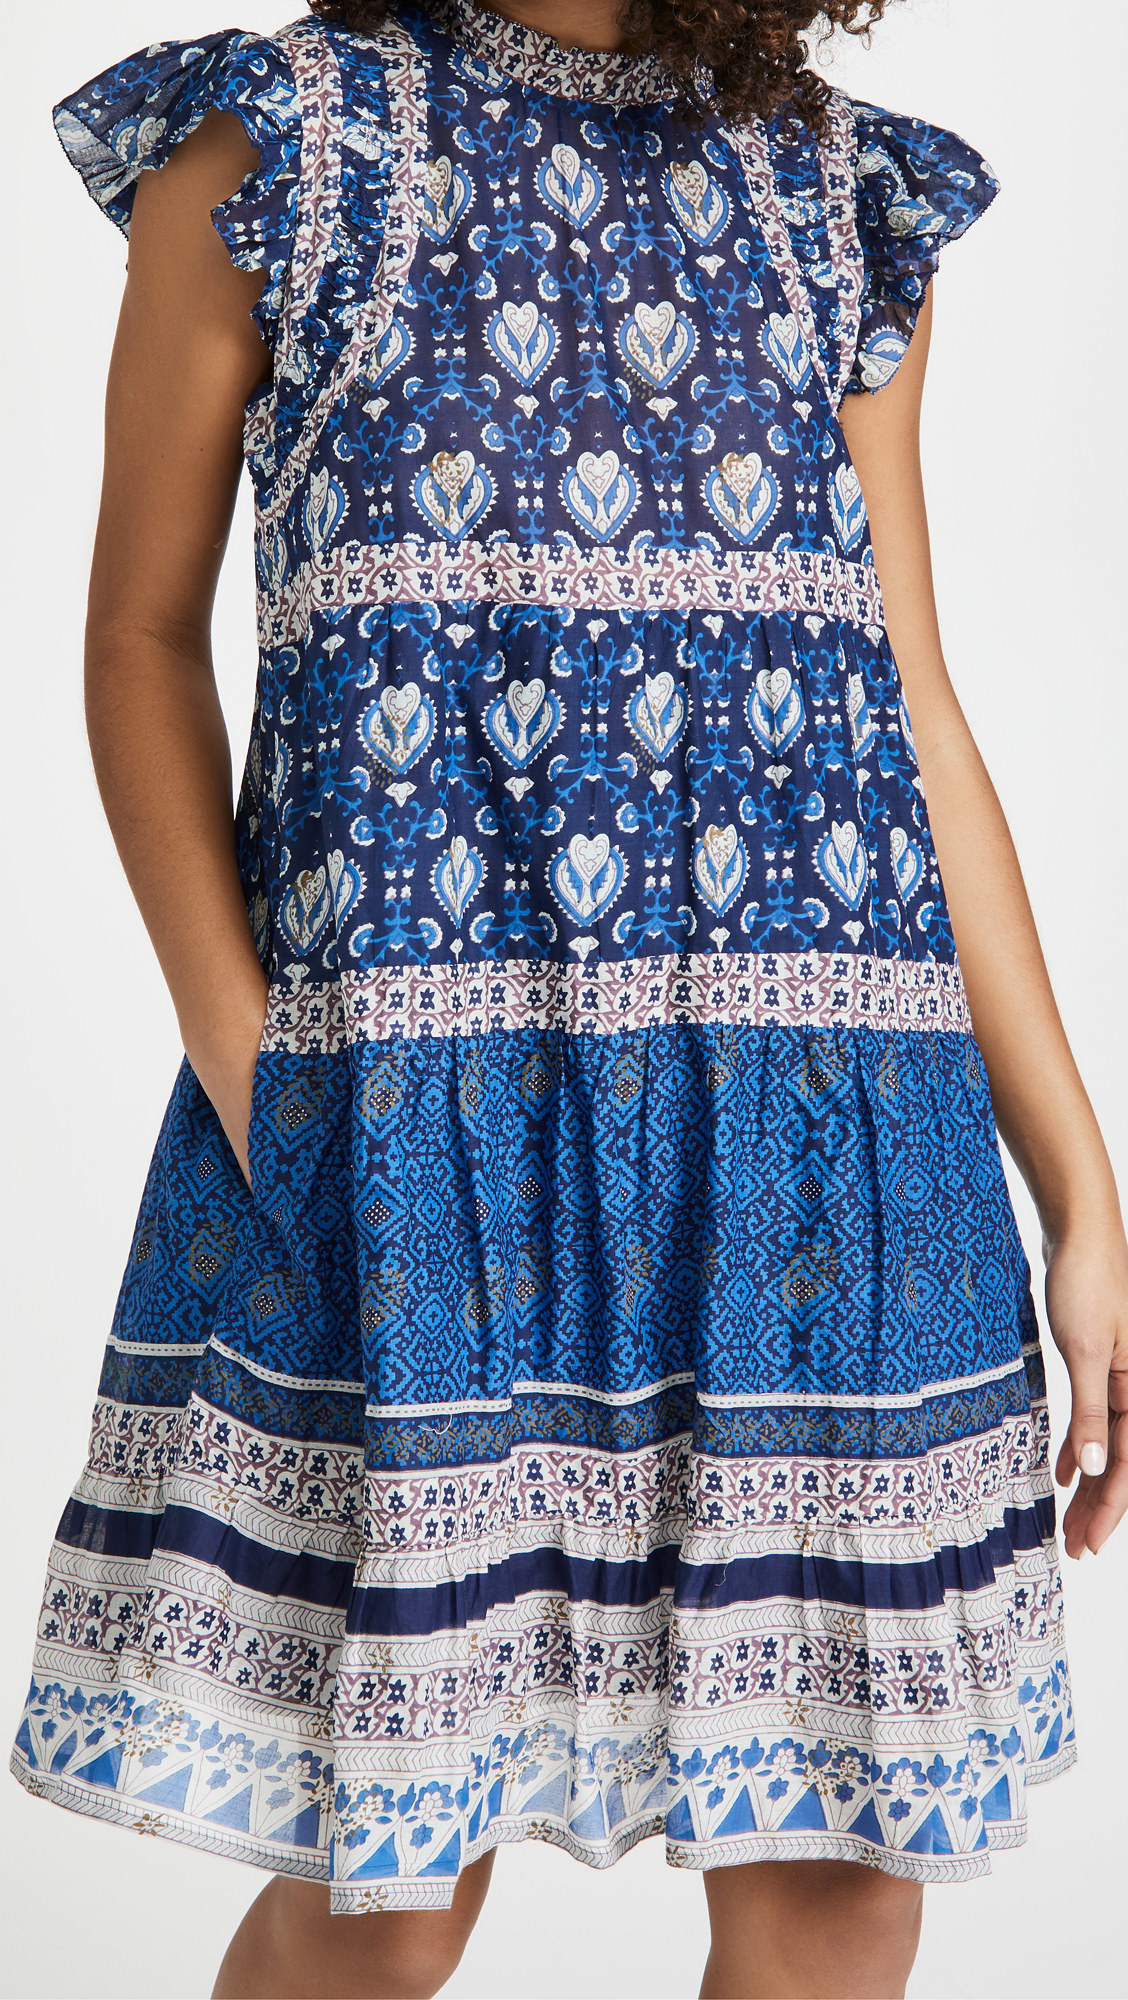 Model wearing the sleeveless, knee-length, ruffle trim dress in a blue print